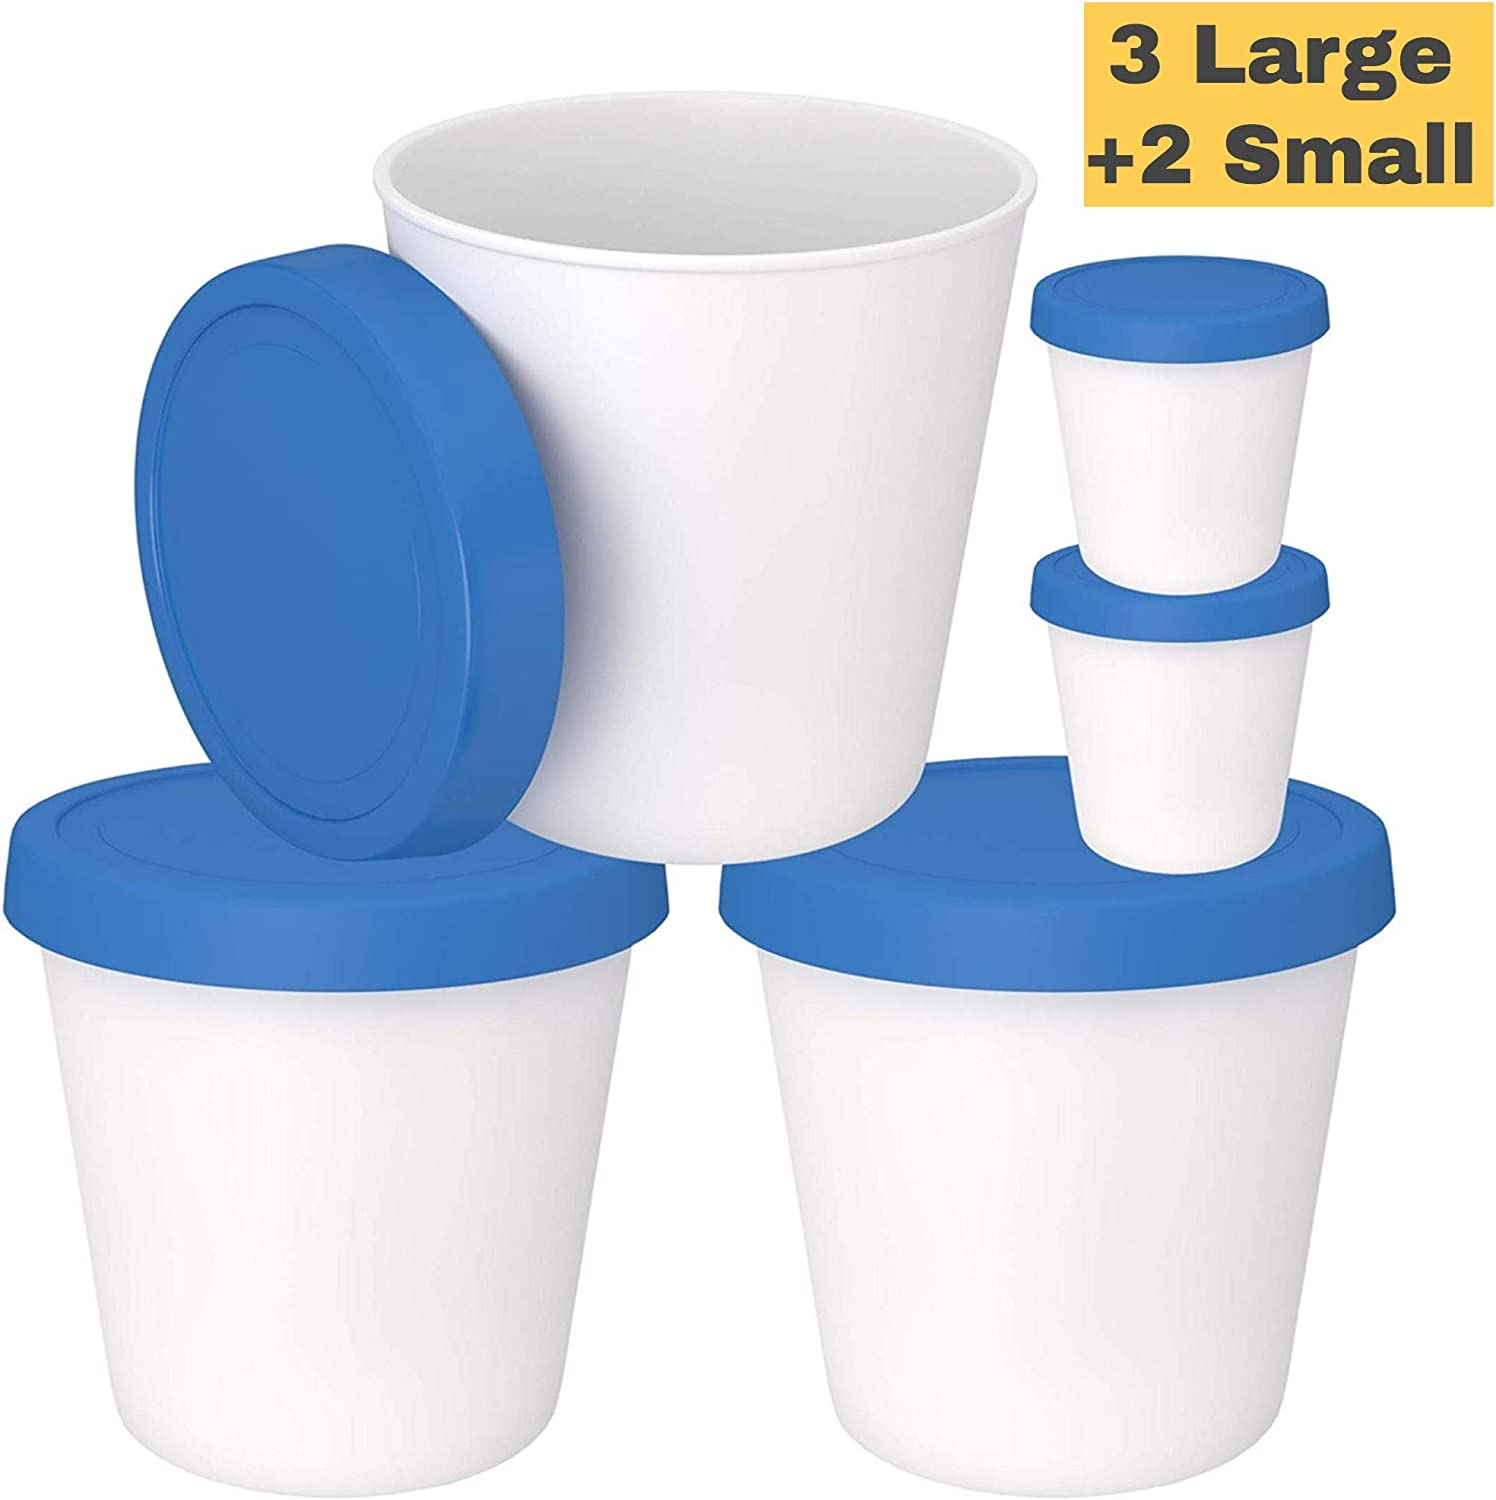 Ice Cream Freezer Storage Containers with Silicone Lids (3 Pack, 1- Quart Each) + 2 Serving Cups – Dishwasher Safe - Large Reusable BPA-Free Tub for Homemade Ice-Cream